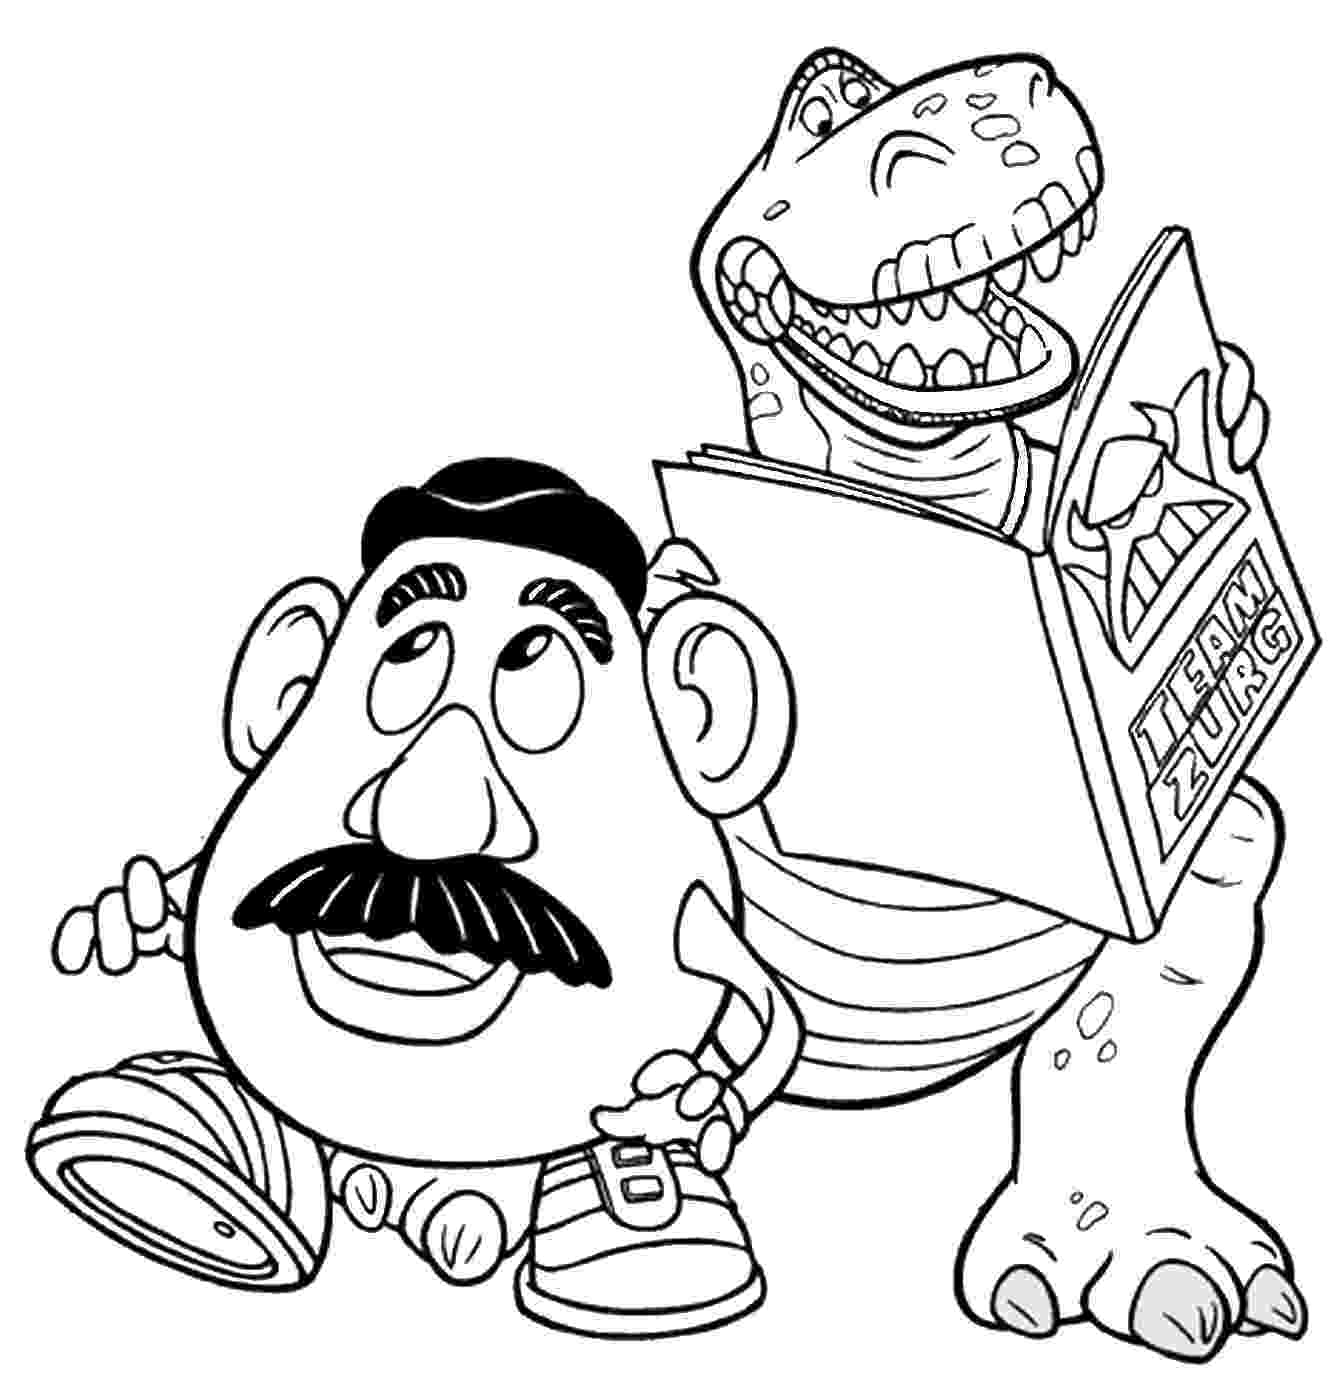 toy story 2 pictures to colour toy story coloring pages free printable coloring pages pictures 2 story colour to toy